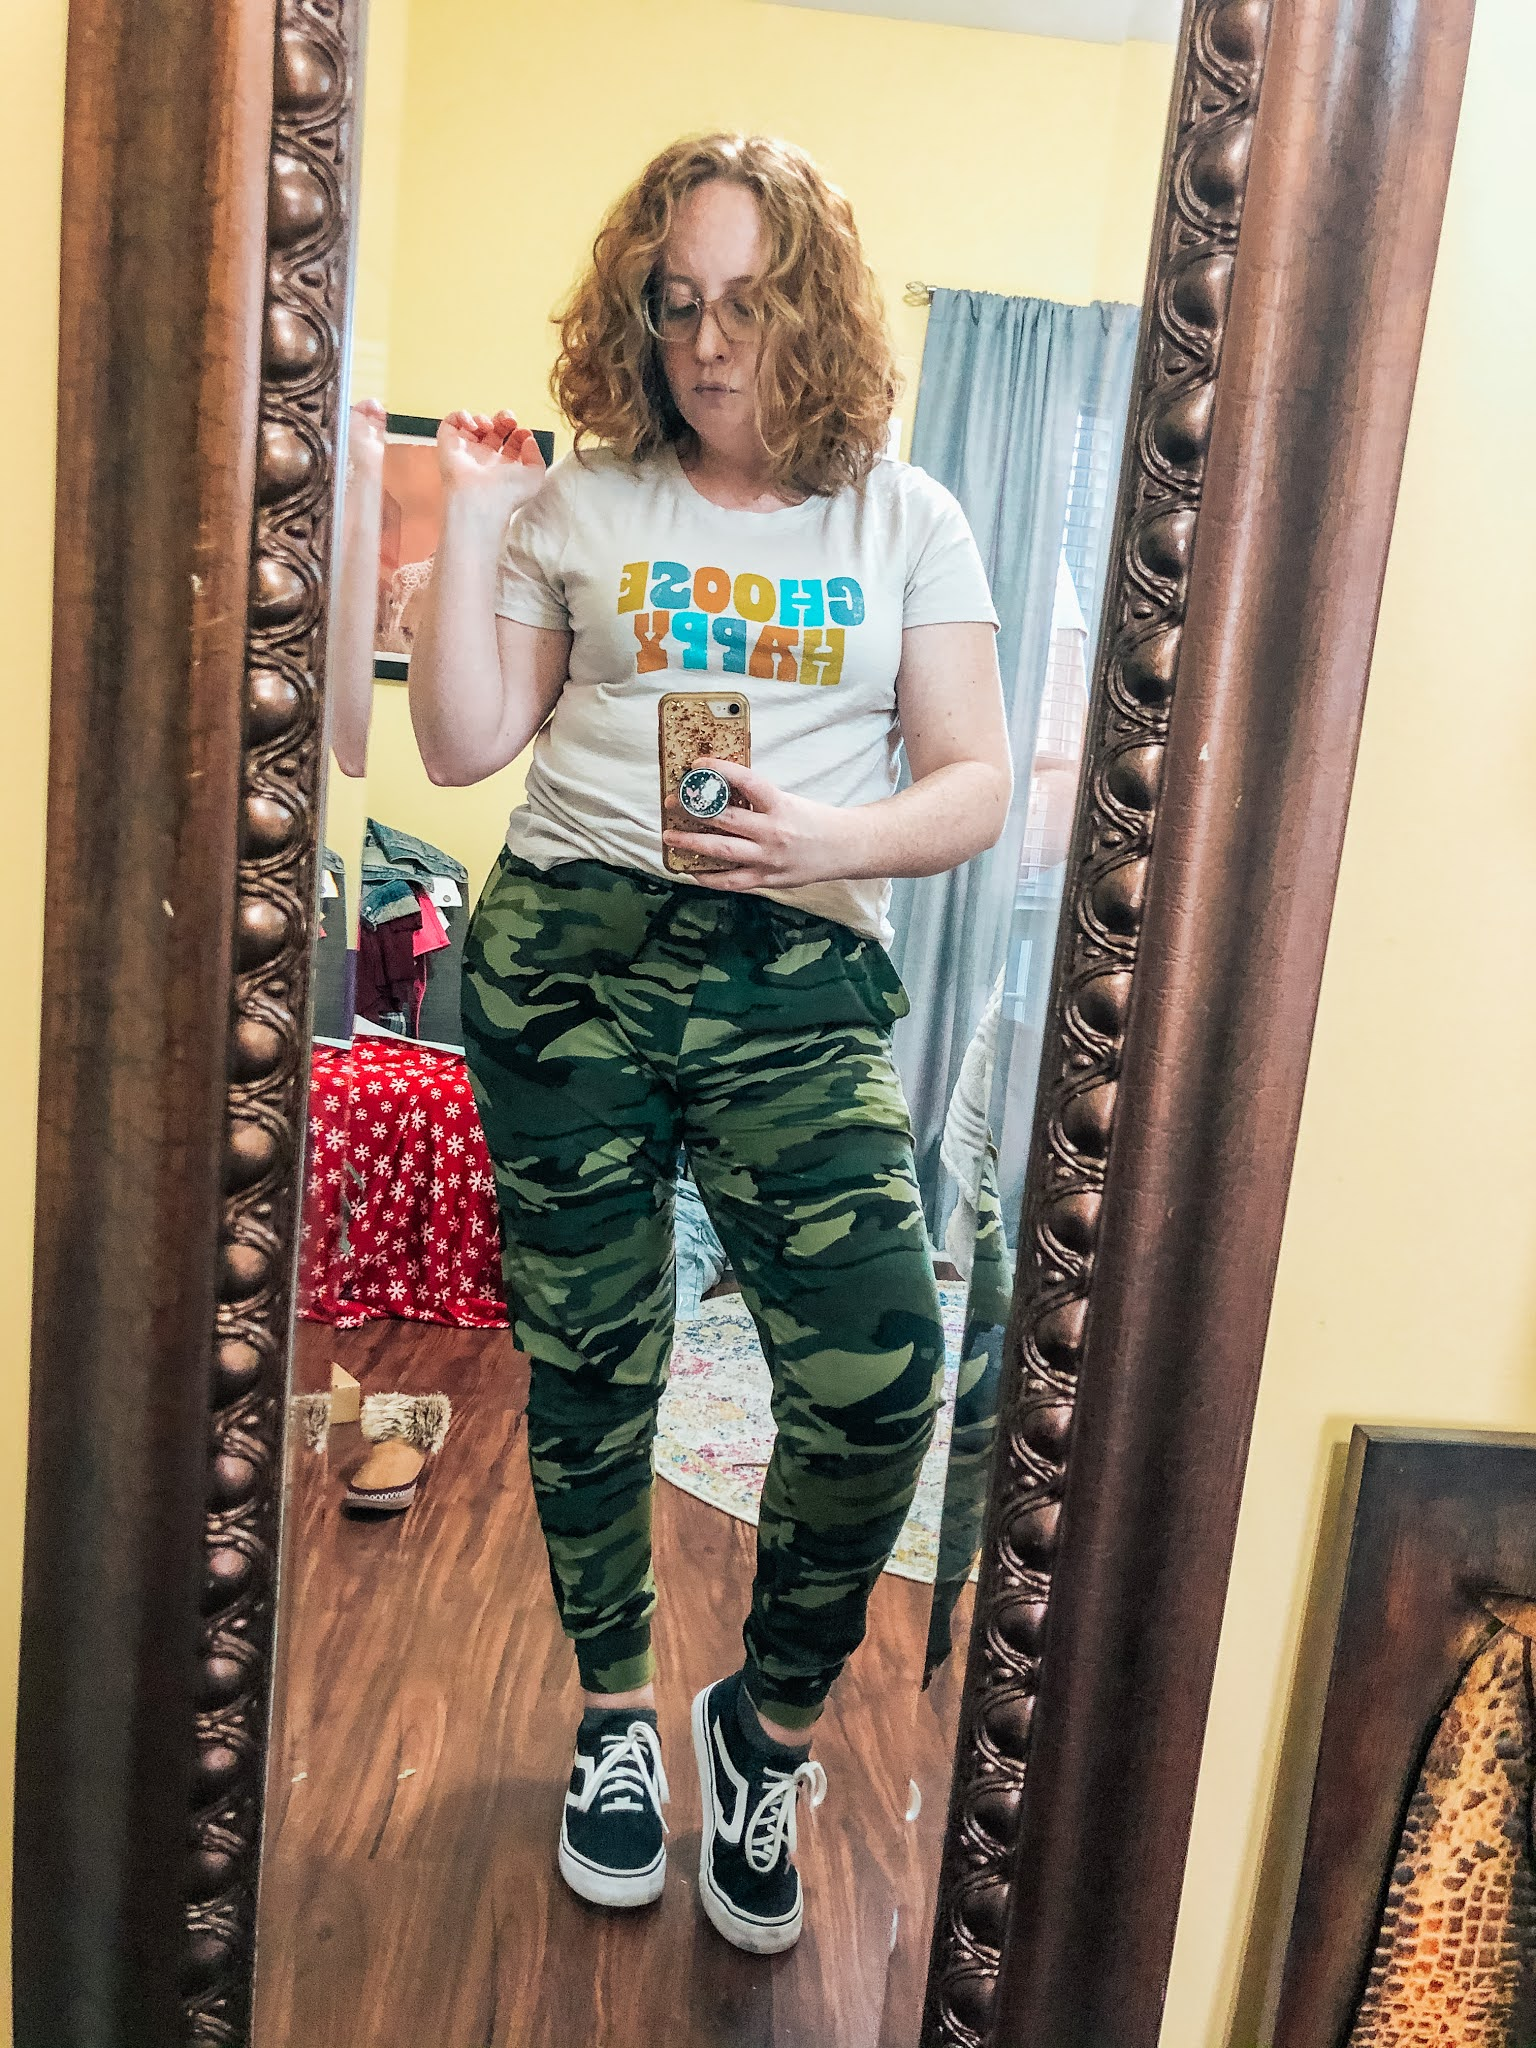 camo-joggers-graphic-tshirt-sneakers